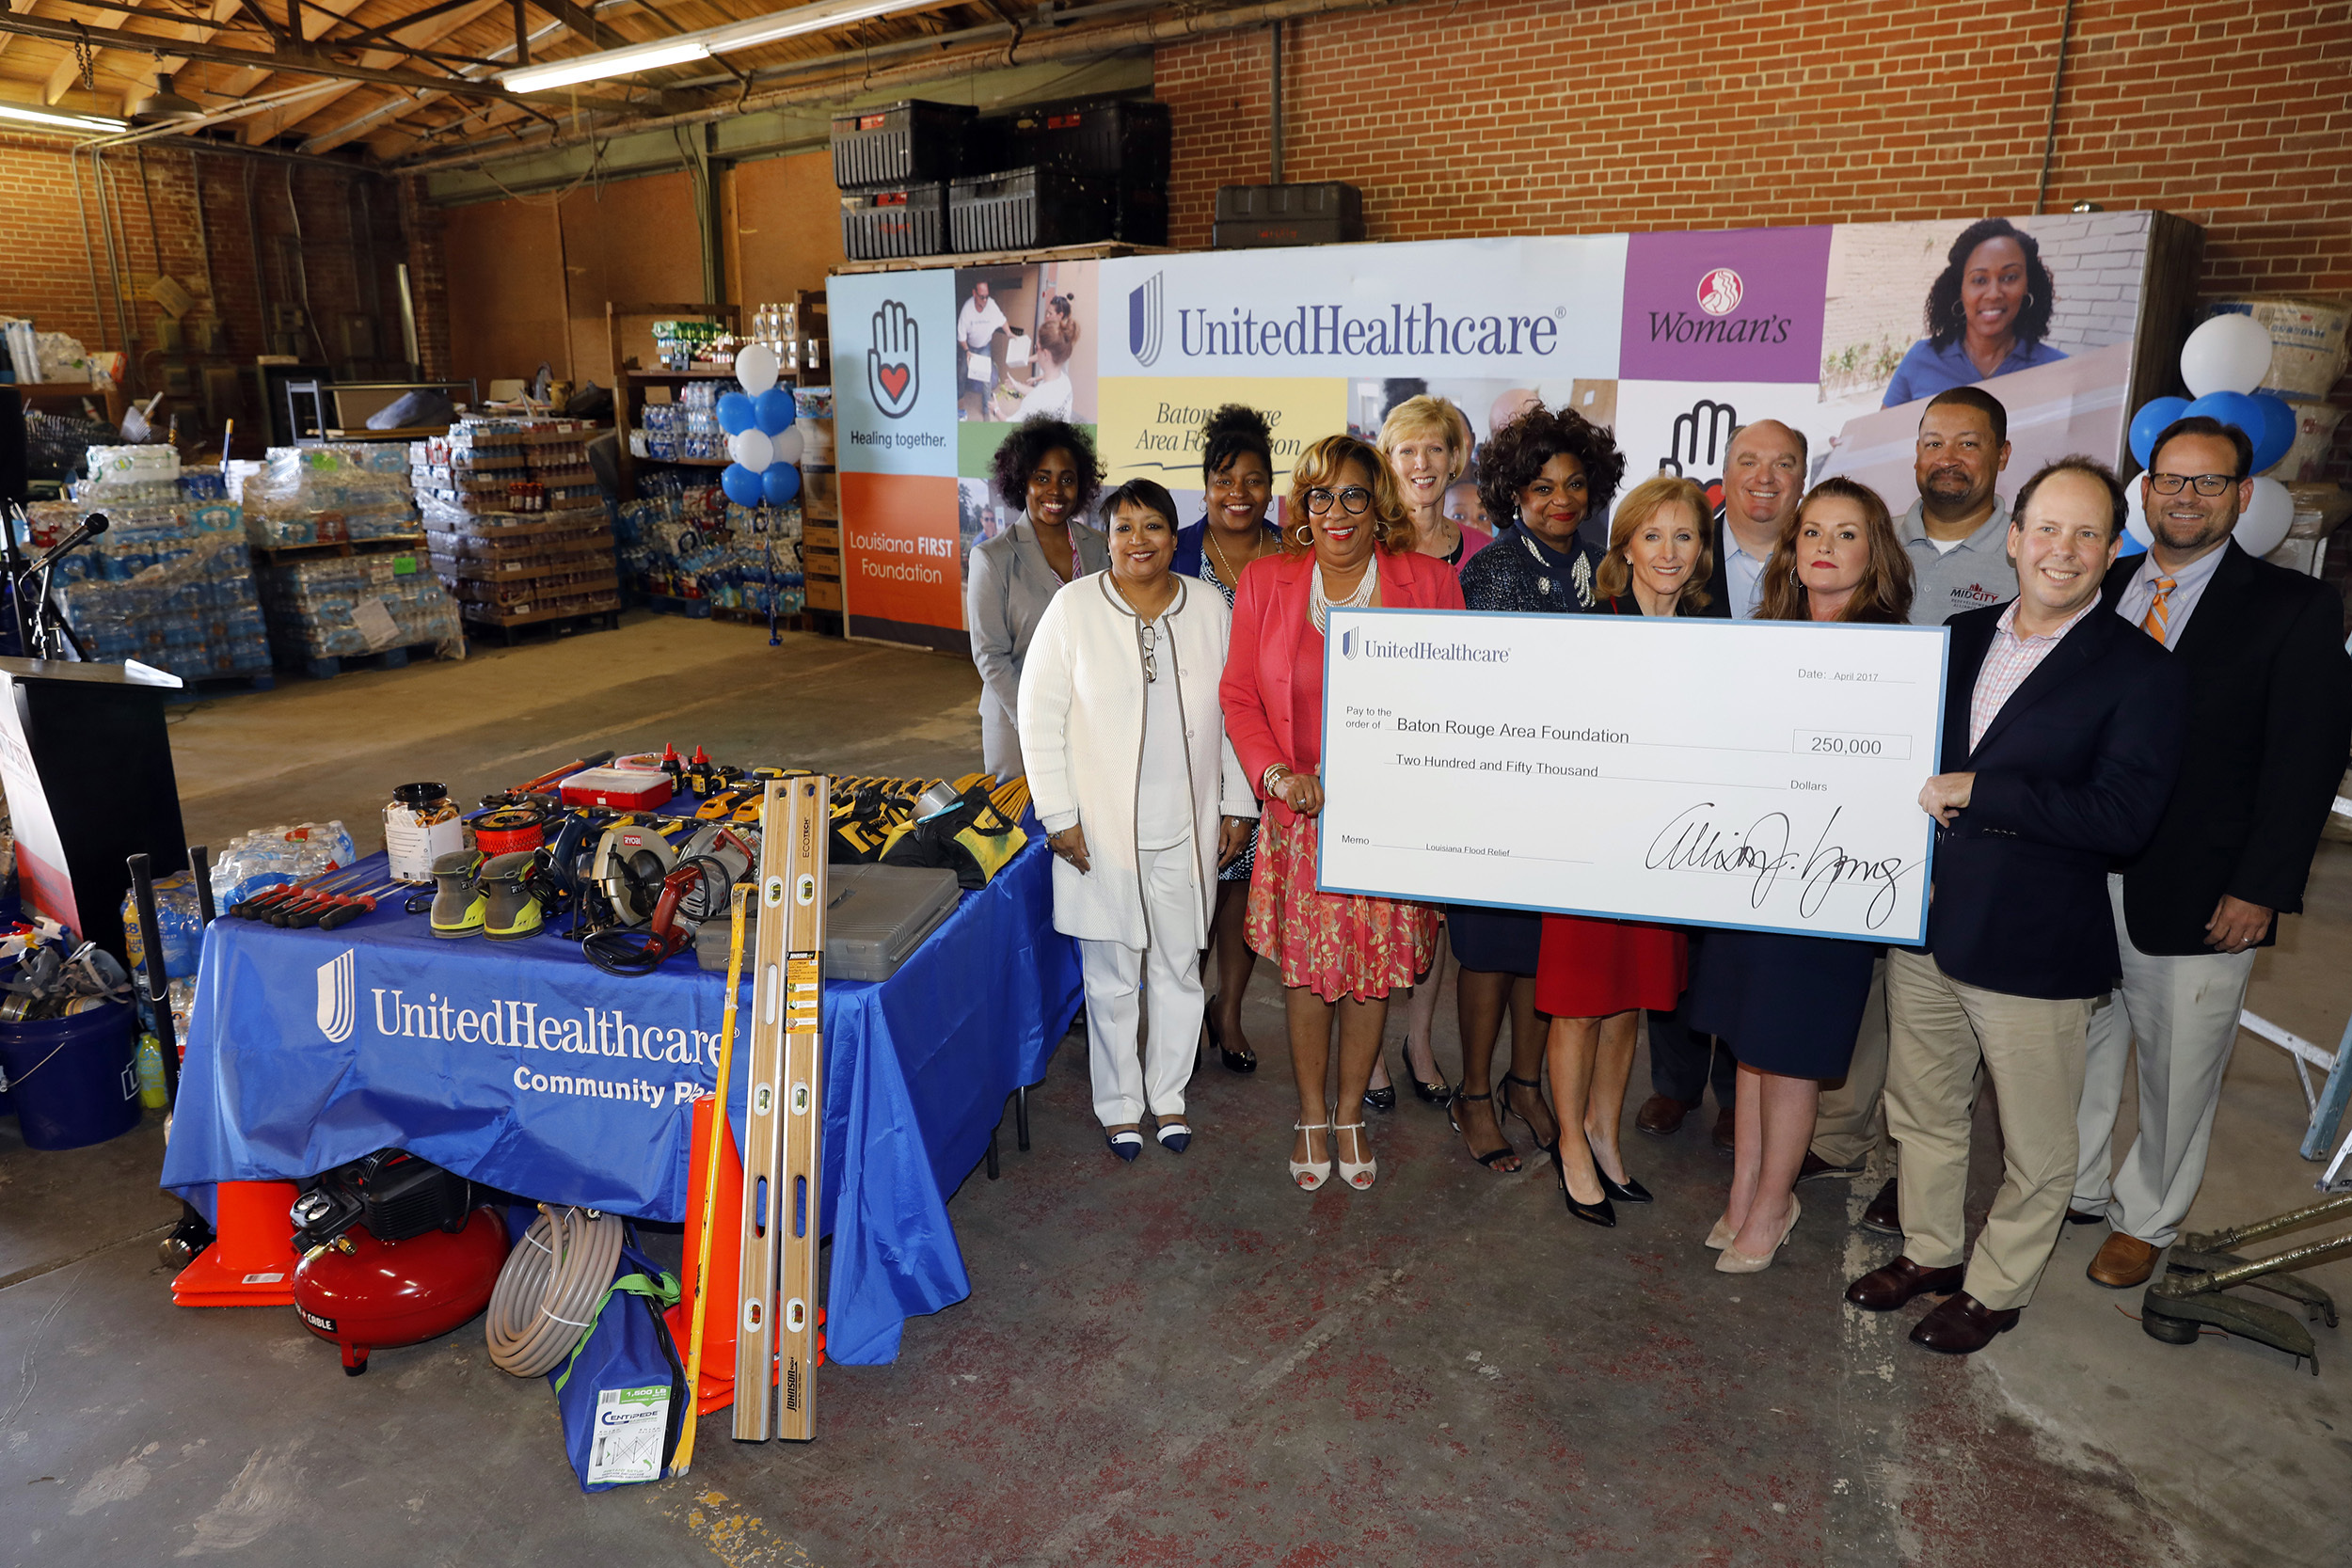 Baton Rouge Area Foundation received a $250,000 grant from UnitedHealthcare today at a special event hosted by Mid City Redevelopment Alliance Inc. in Baton Rouge, La. The grant will help with relief and recovery efforts from the floods in Southeast Louisiana. Left to right: Jessica Sparks, Virginia Listach, Latisha Nixon-Jones with Southern University Law Center (SULC); Allison Young, UnitedHealthcare; Pam Parker, Woman's Hospital Mammography Coach; Tanya Freeman, SULC; First Lady of Louisiana Donna Edwards; Edmund Giering, Baton Rouge Area Foundation; Rachel Farmer, UnitedHealthcare; Samuel Sanders, Mid City Redevelopment Alliance; Zack Rosenberg, SBP; and Karl Lirette, UnitedHealthcare (Photo: Tim Mueller).